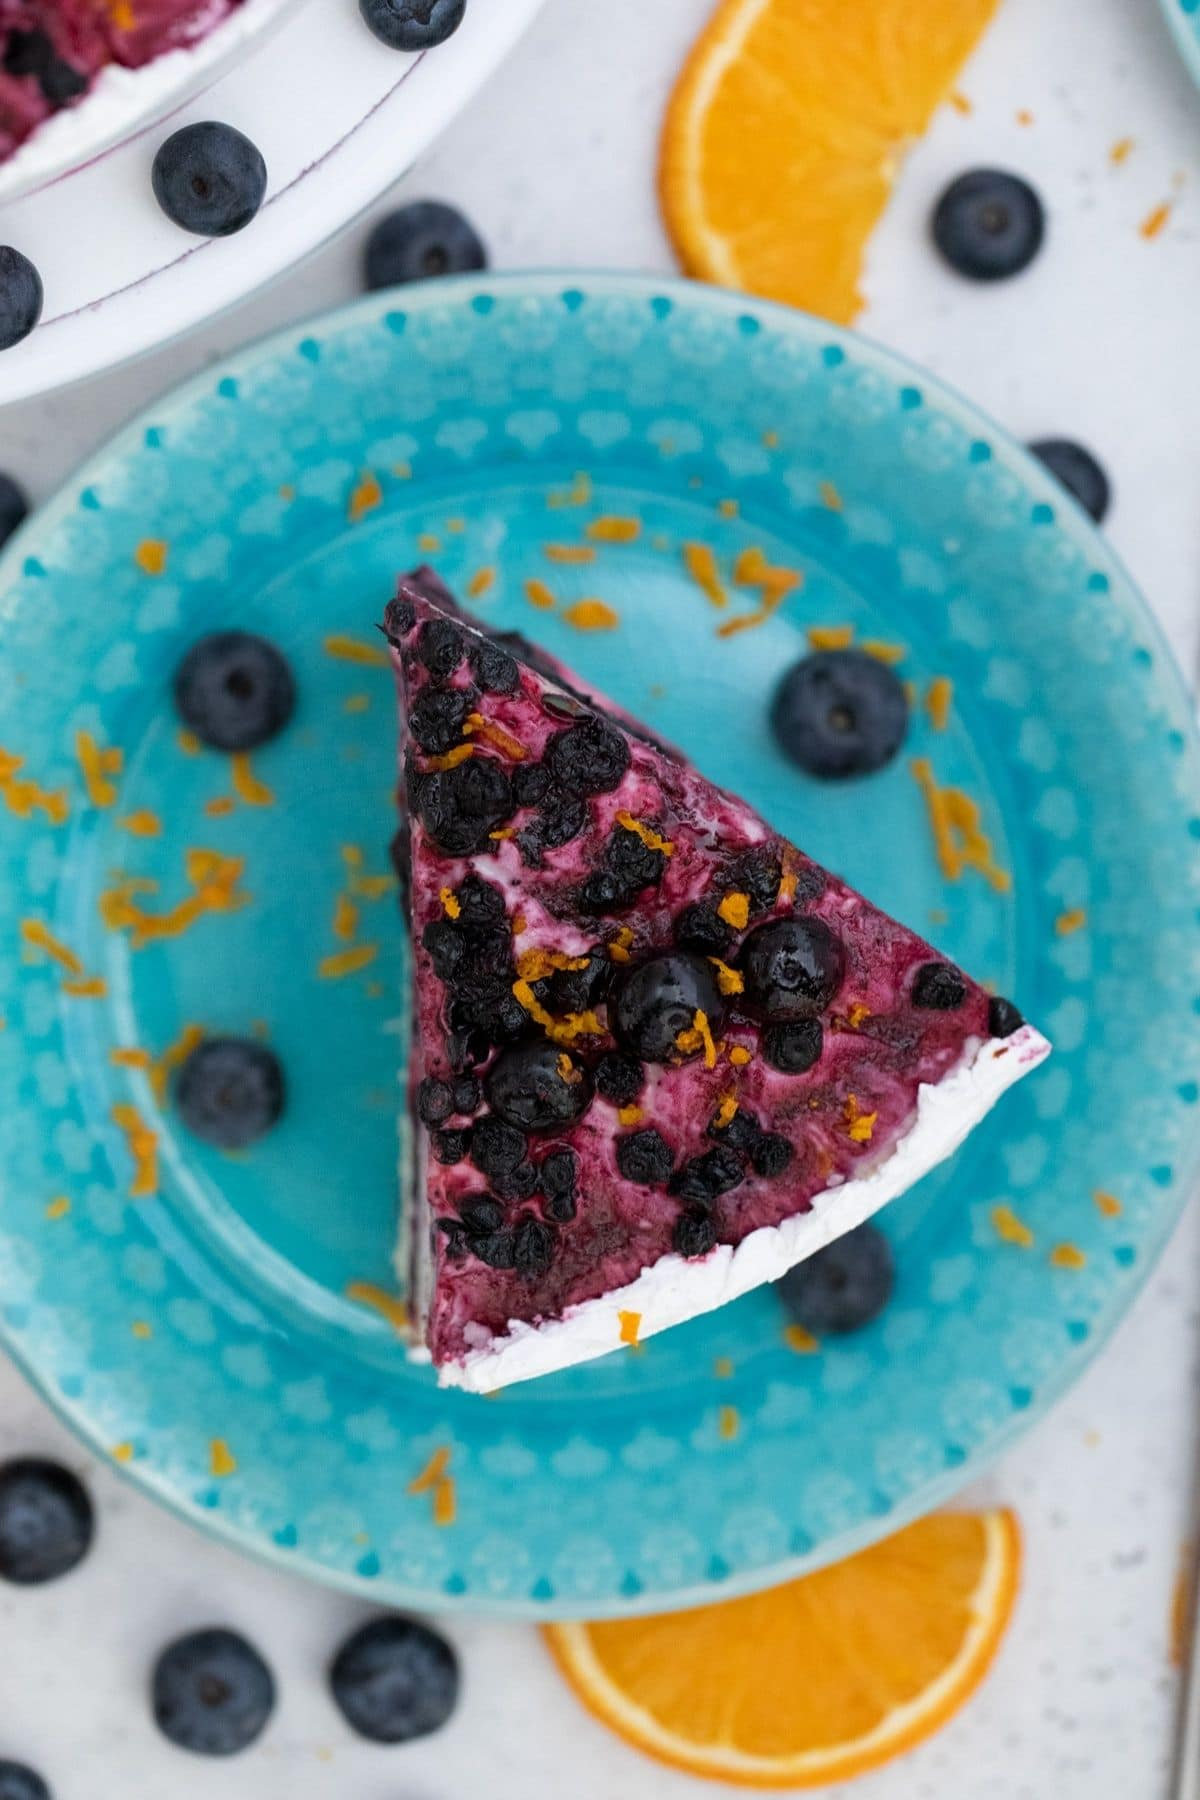 Picture of cake on blue plate from overhead